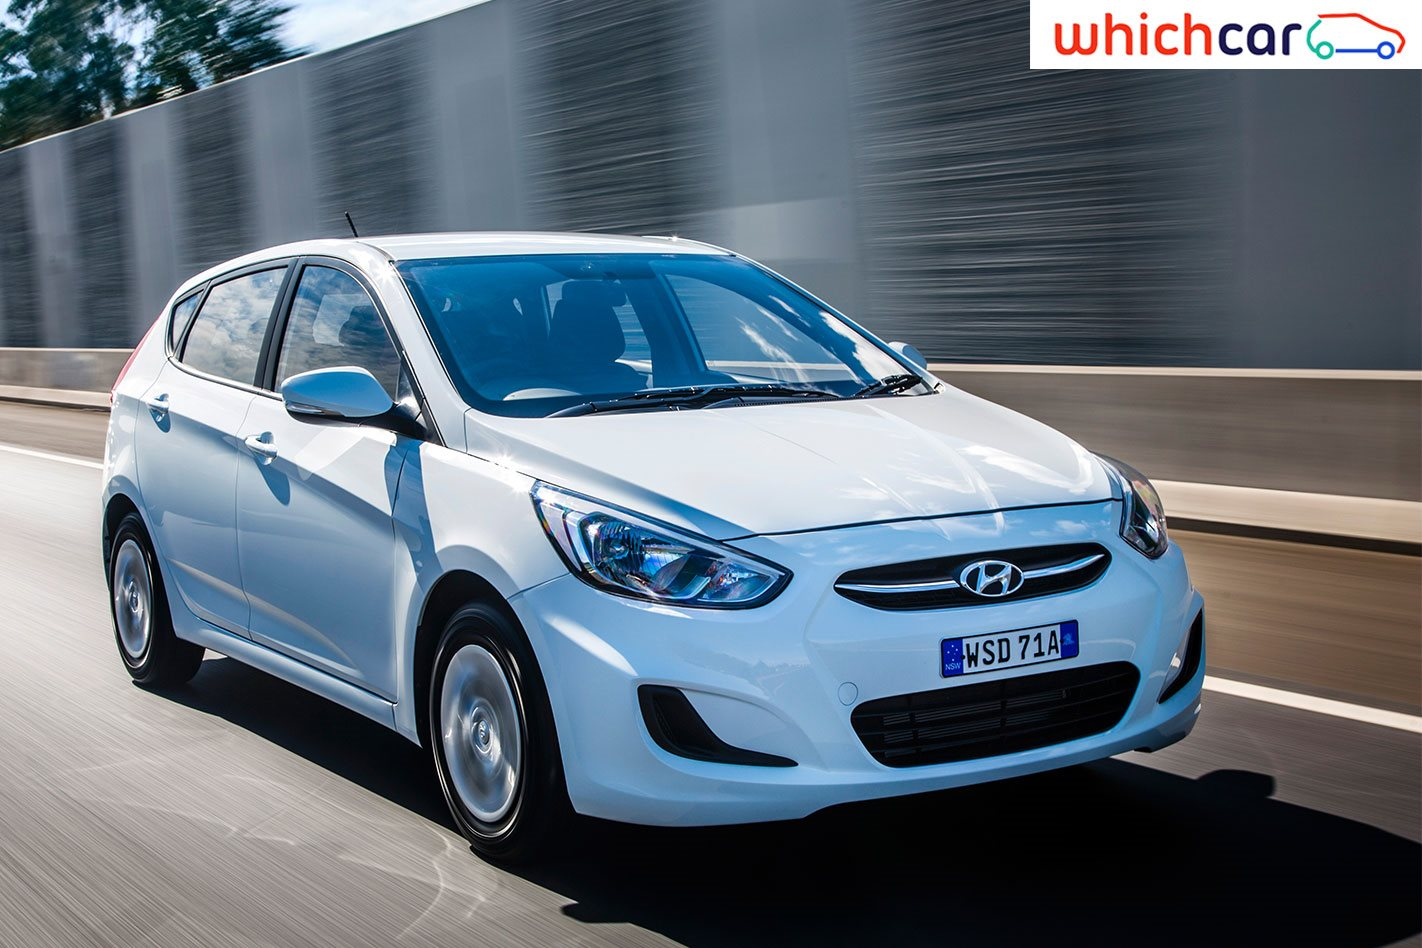 Hyundai Accent 2015 2016 2017 Review Price Specification Whichcar